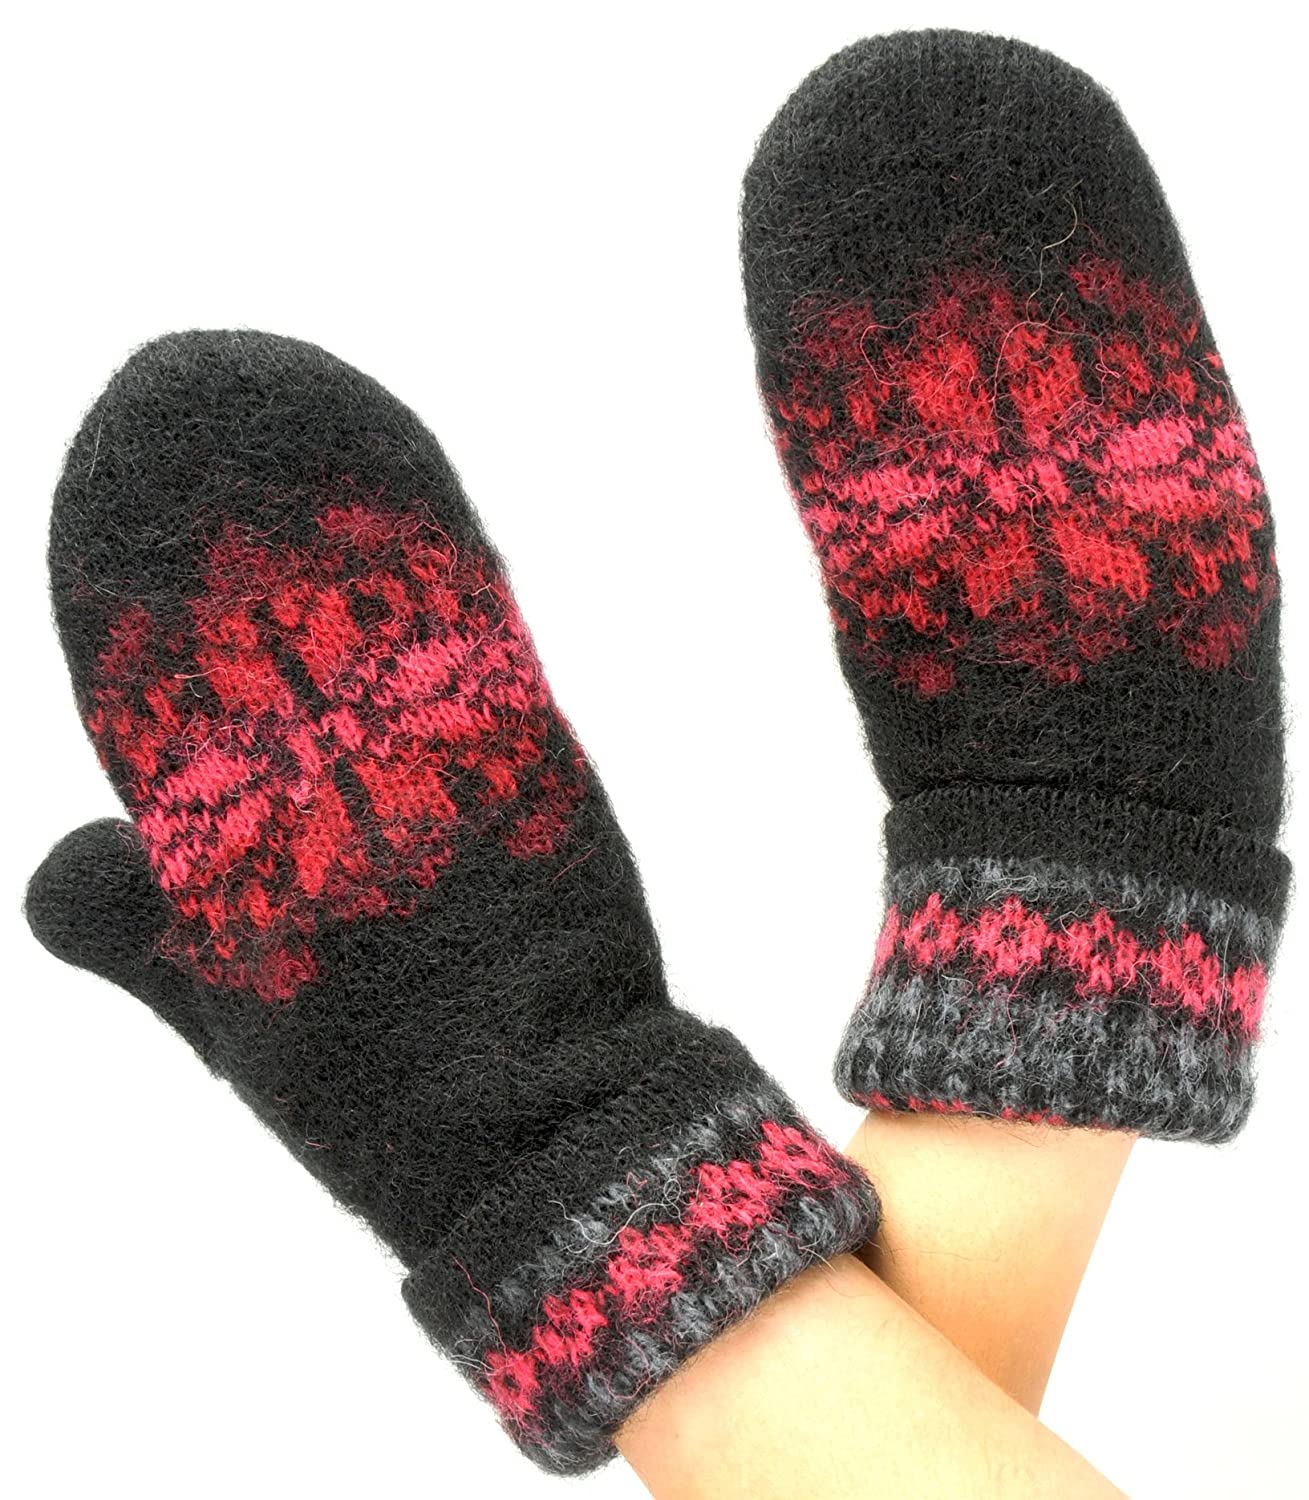 Soft and Warm Mittens. 100 % Icelandic Wool 08402-09